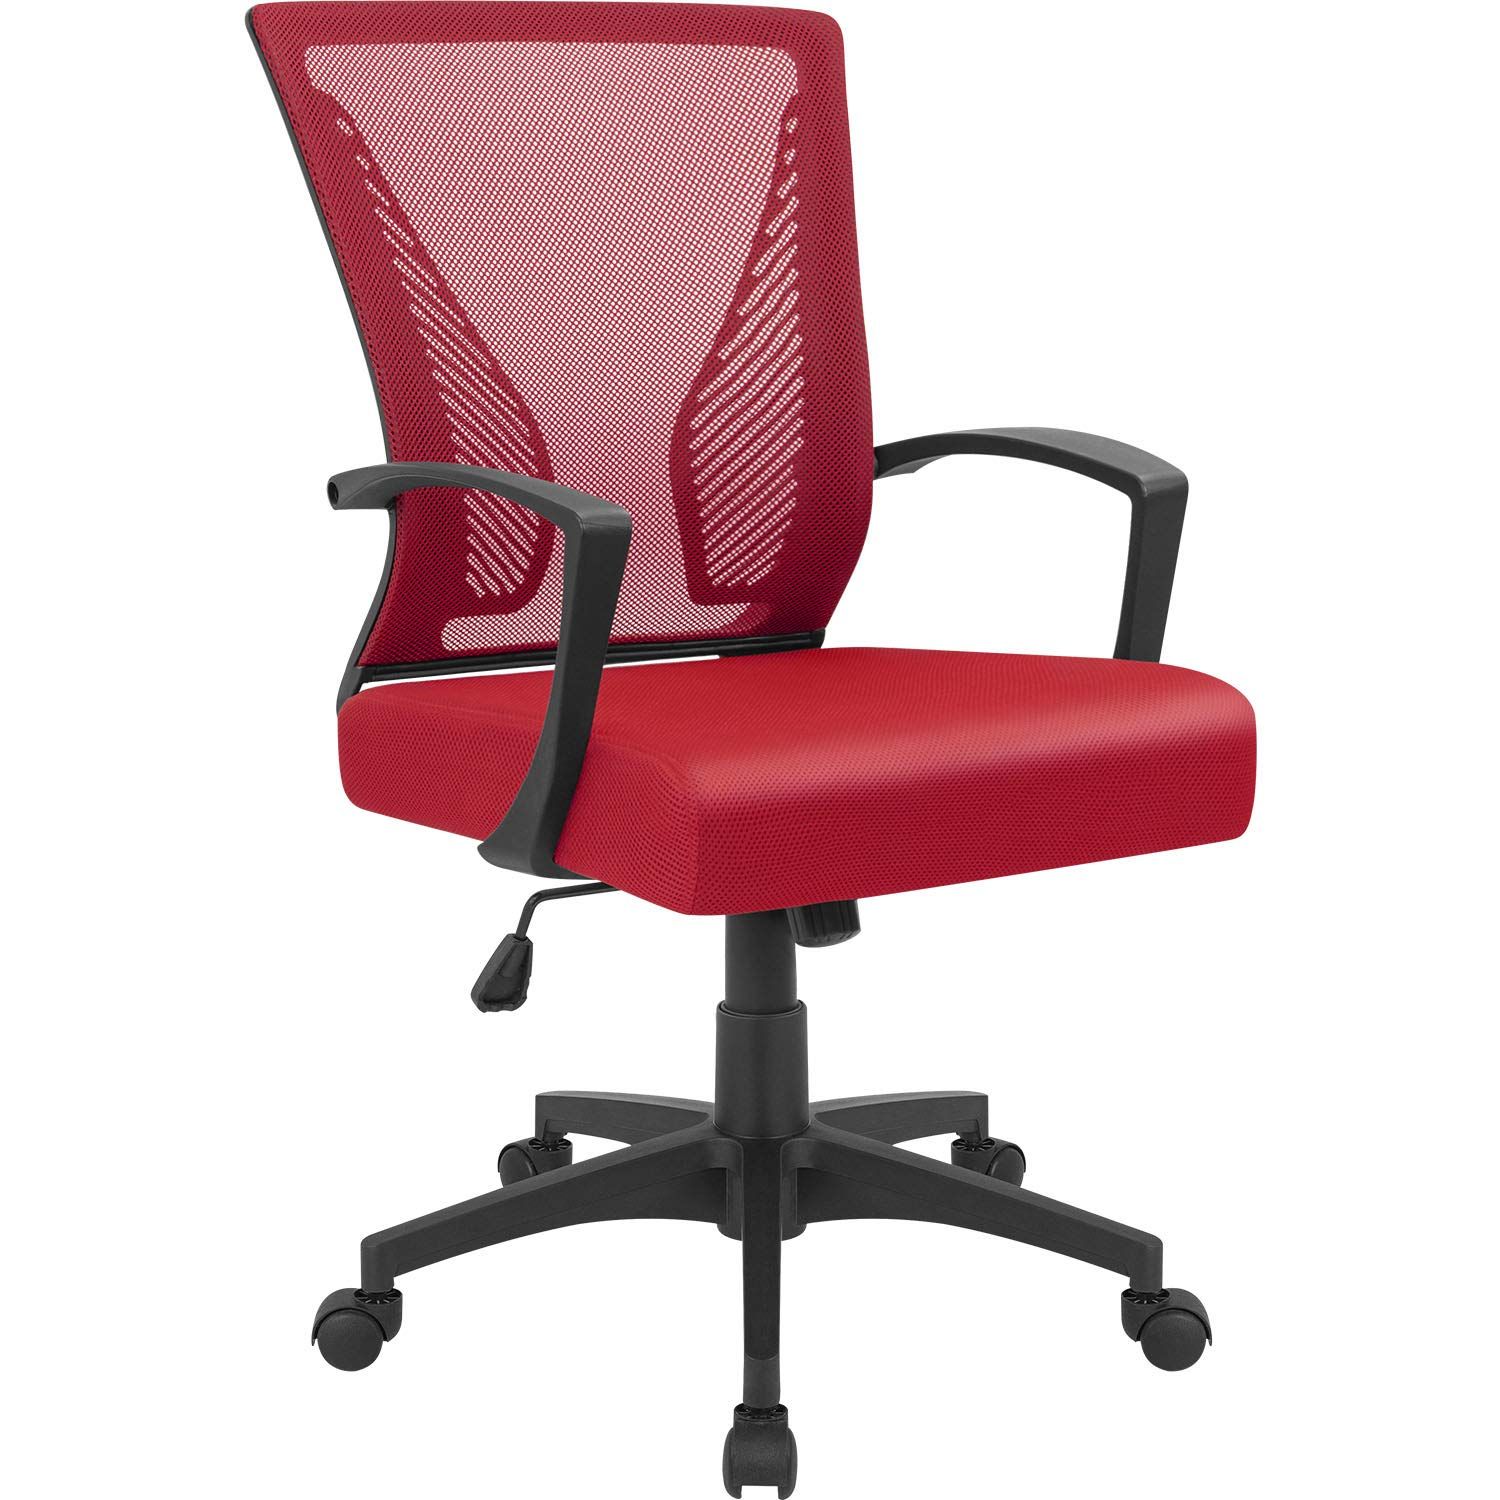 Furmax Office Chair Mid Back Swivel Lumbar Support Desk Chair, Computer Ergonomic Mesh Chair with